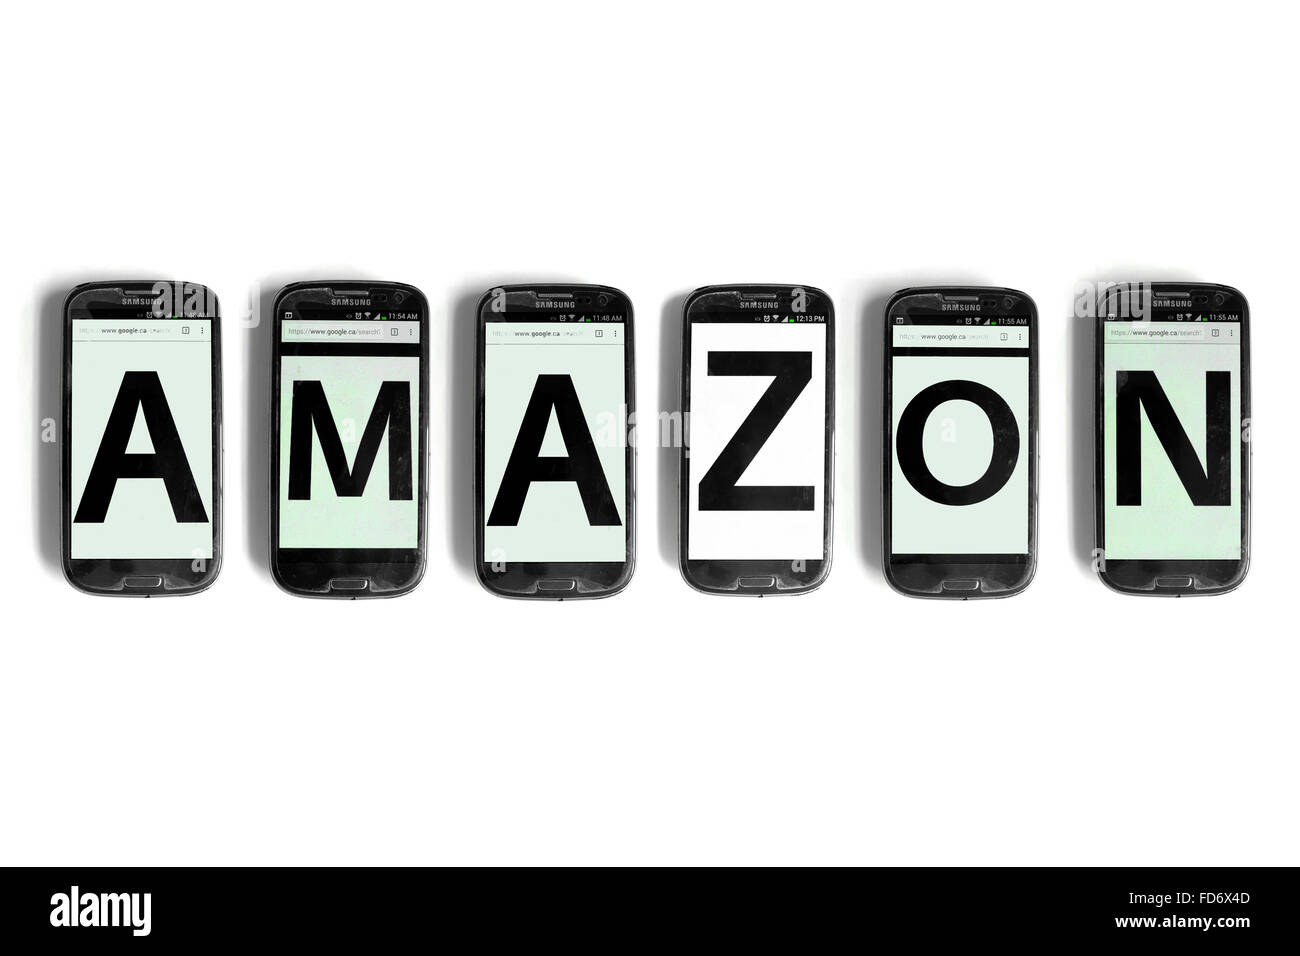 Amazon spelled on the screens of smartphones photographed against a white background. - Stock Image